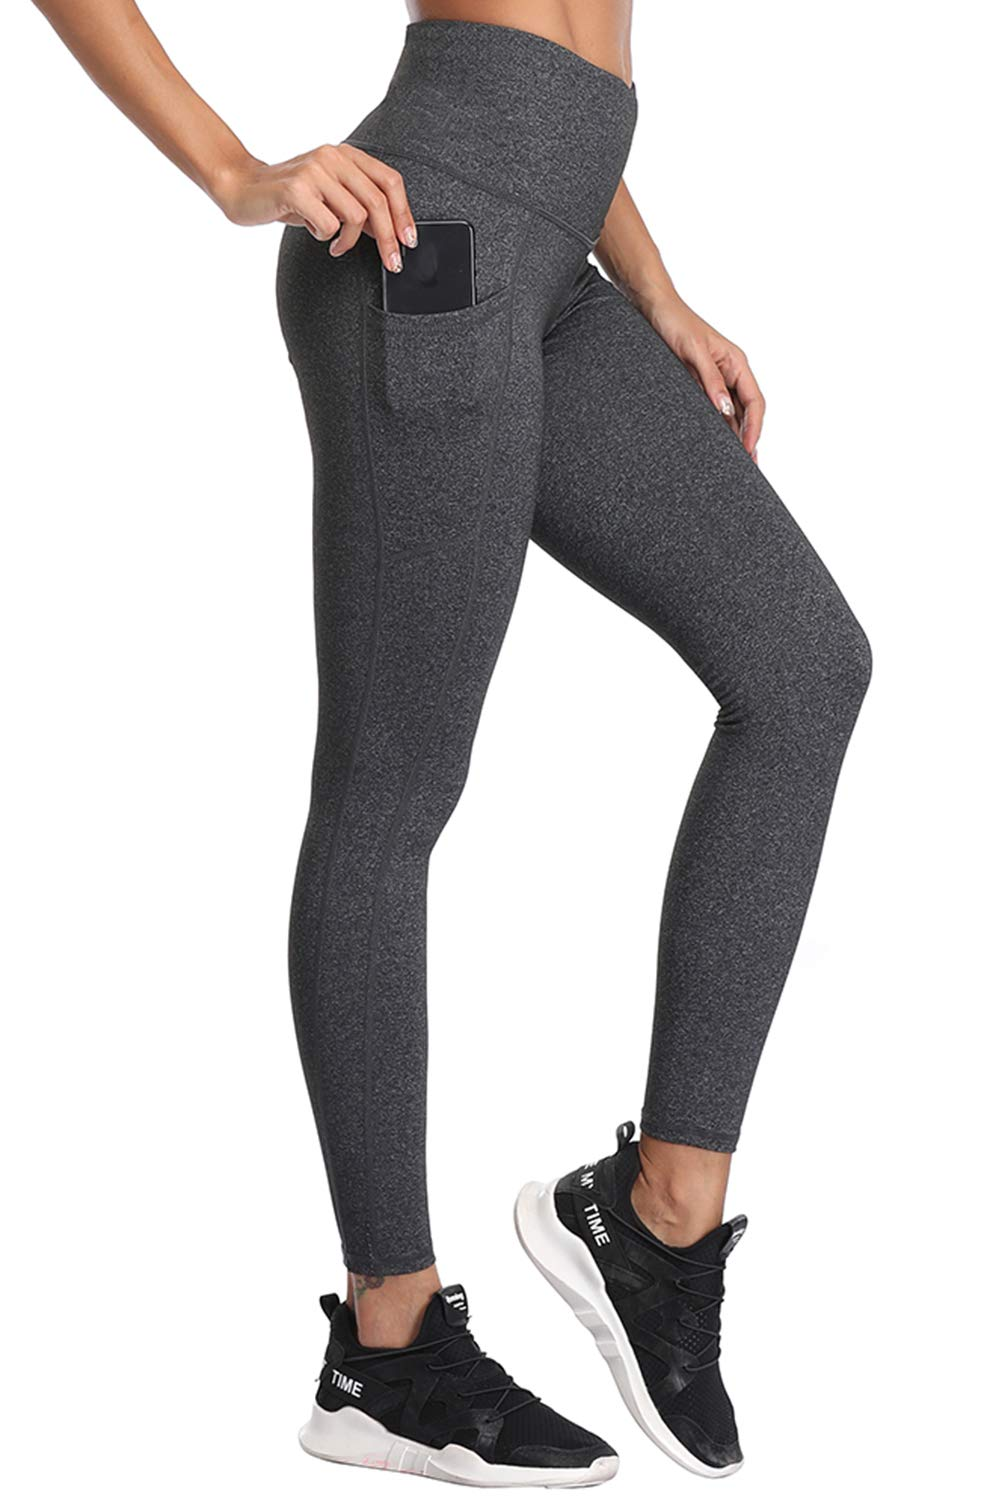 BESTENA Yoga Pants, Womens Leggings High Waist Tummy Control Workout Running Pants with Pockets